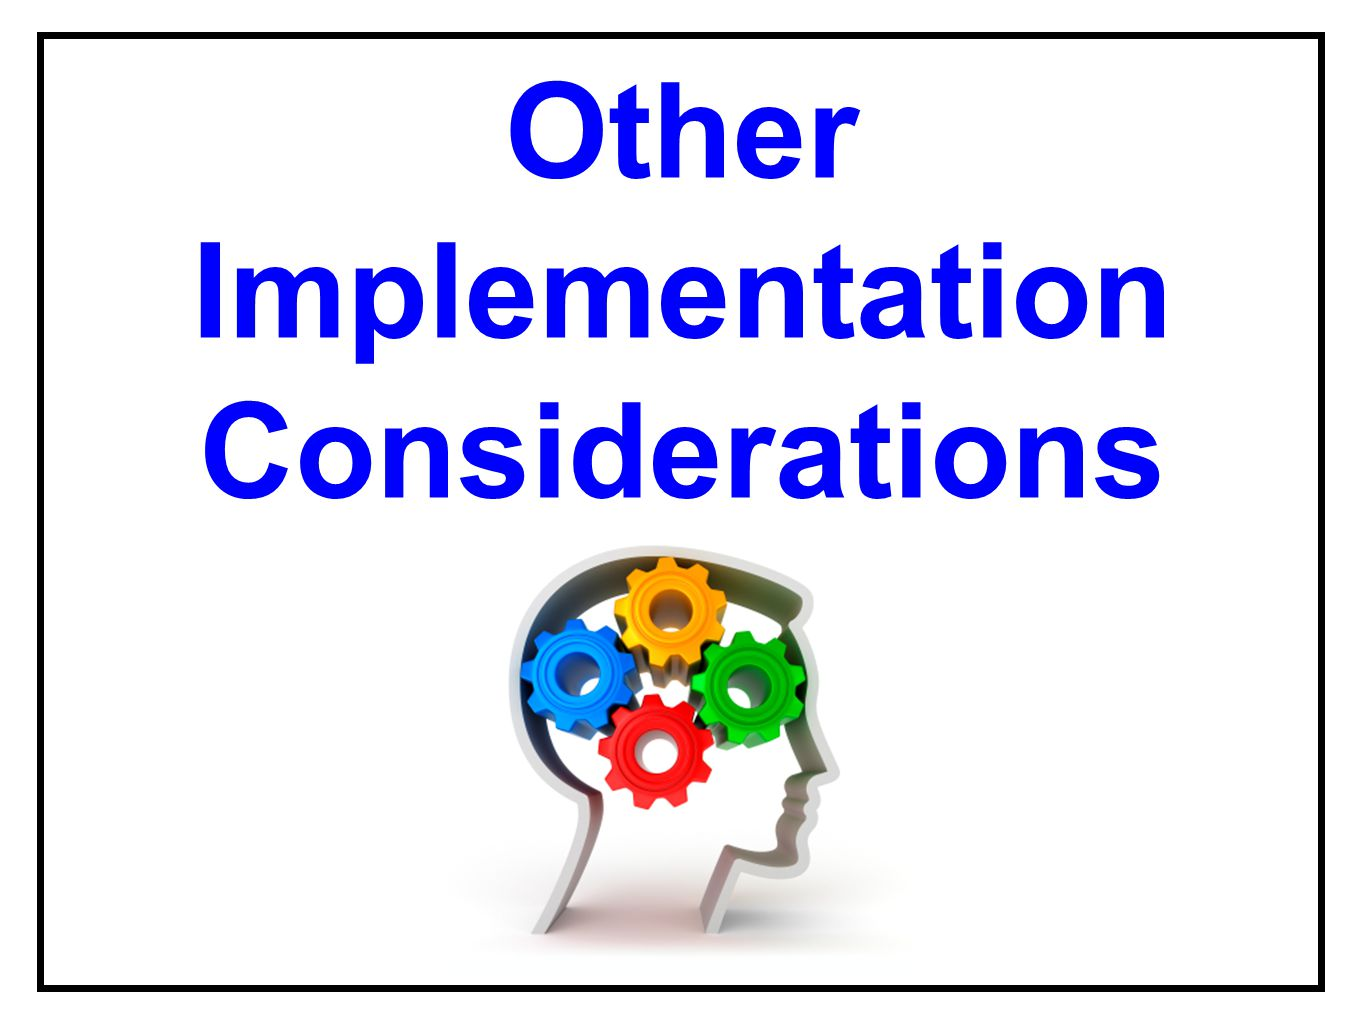 Other Implementation Considerations